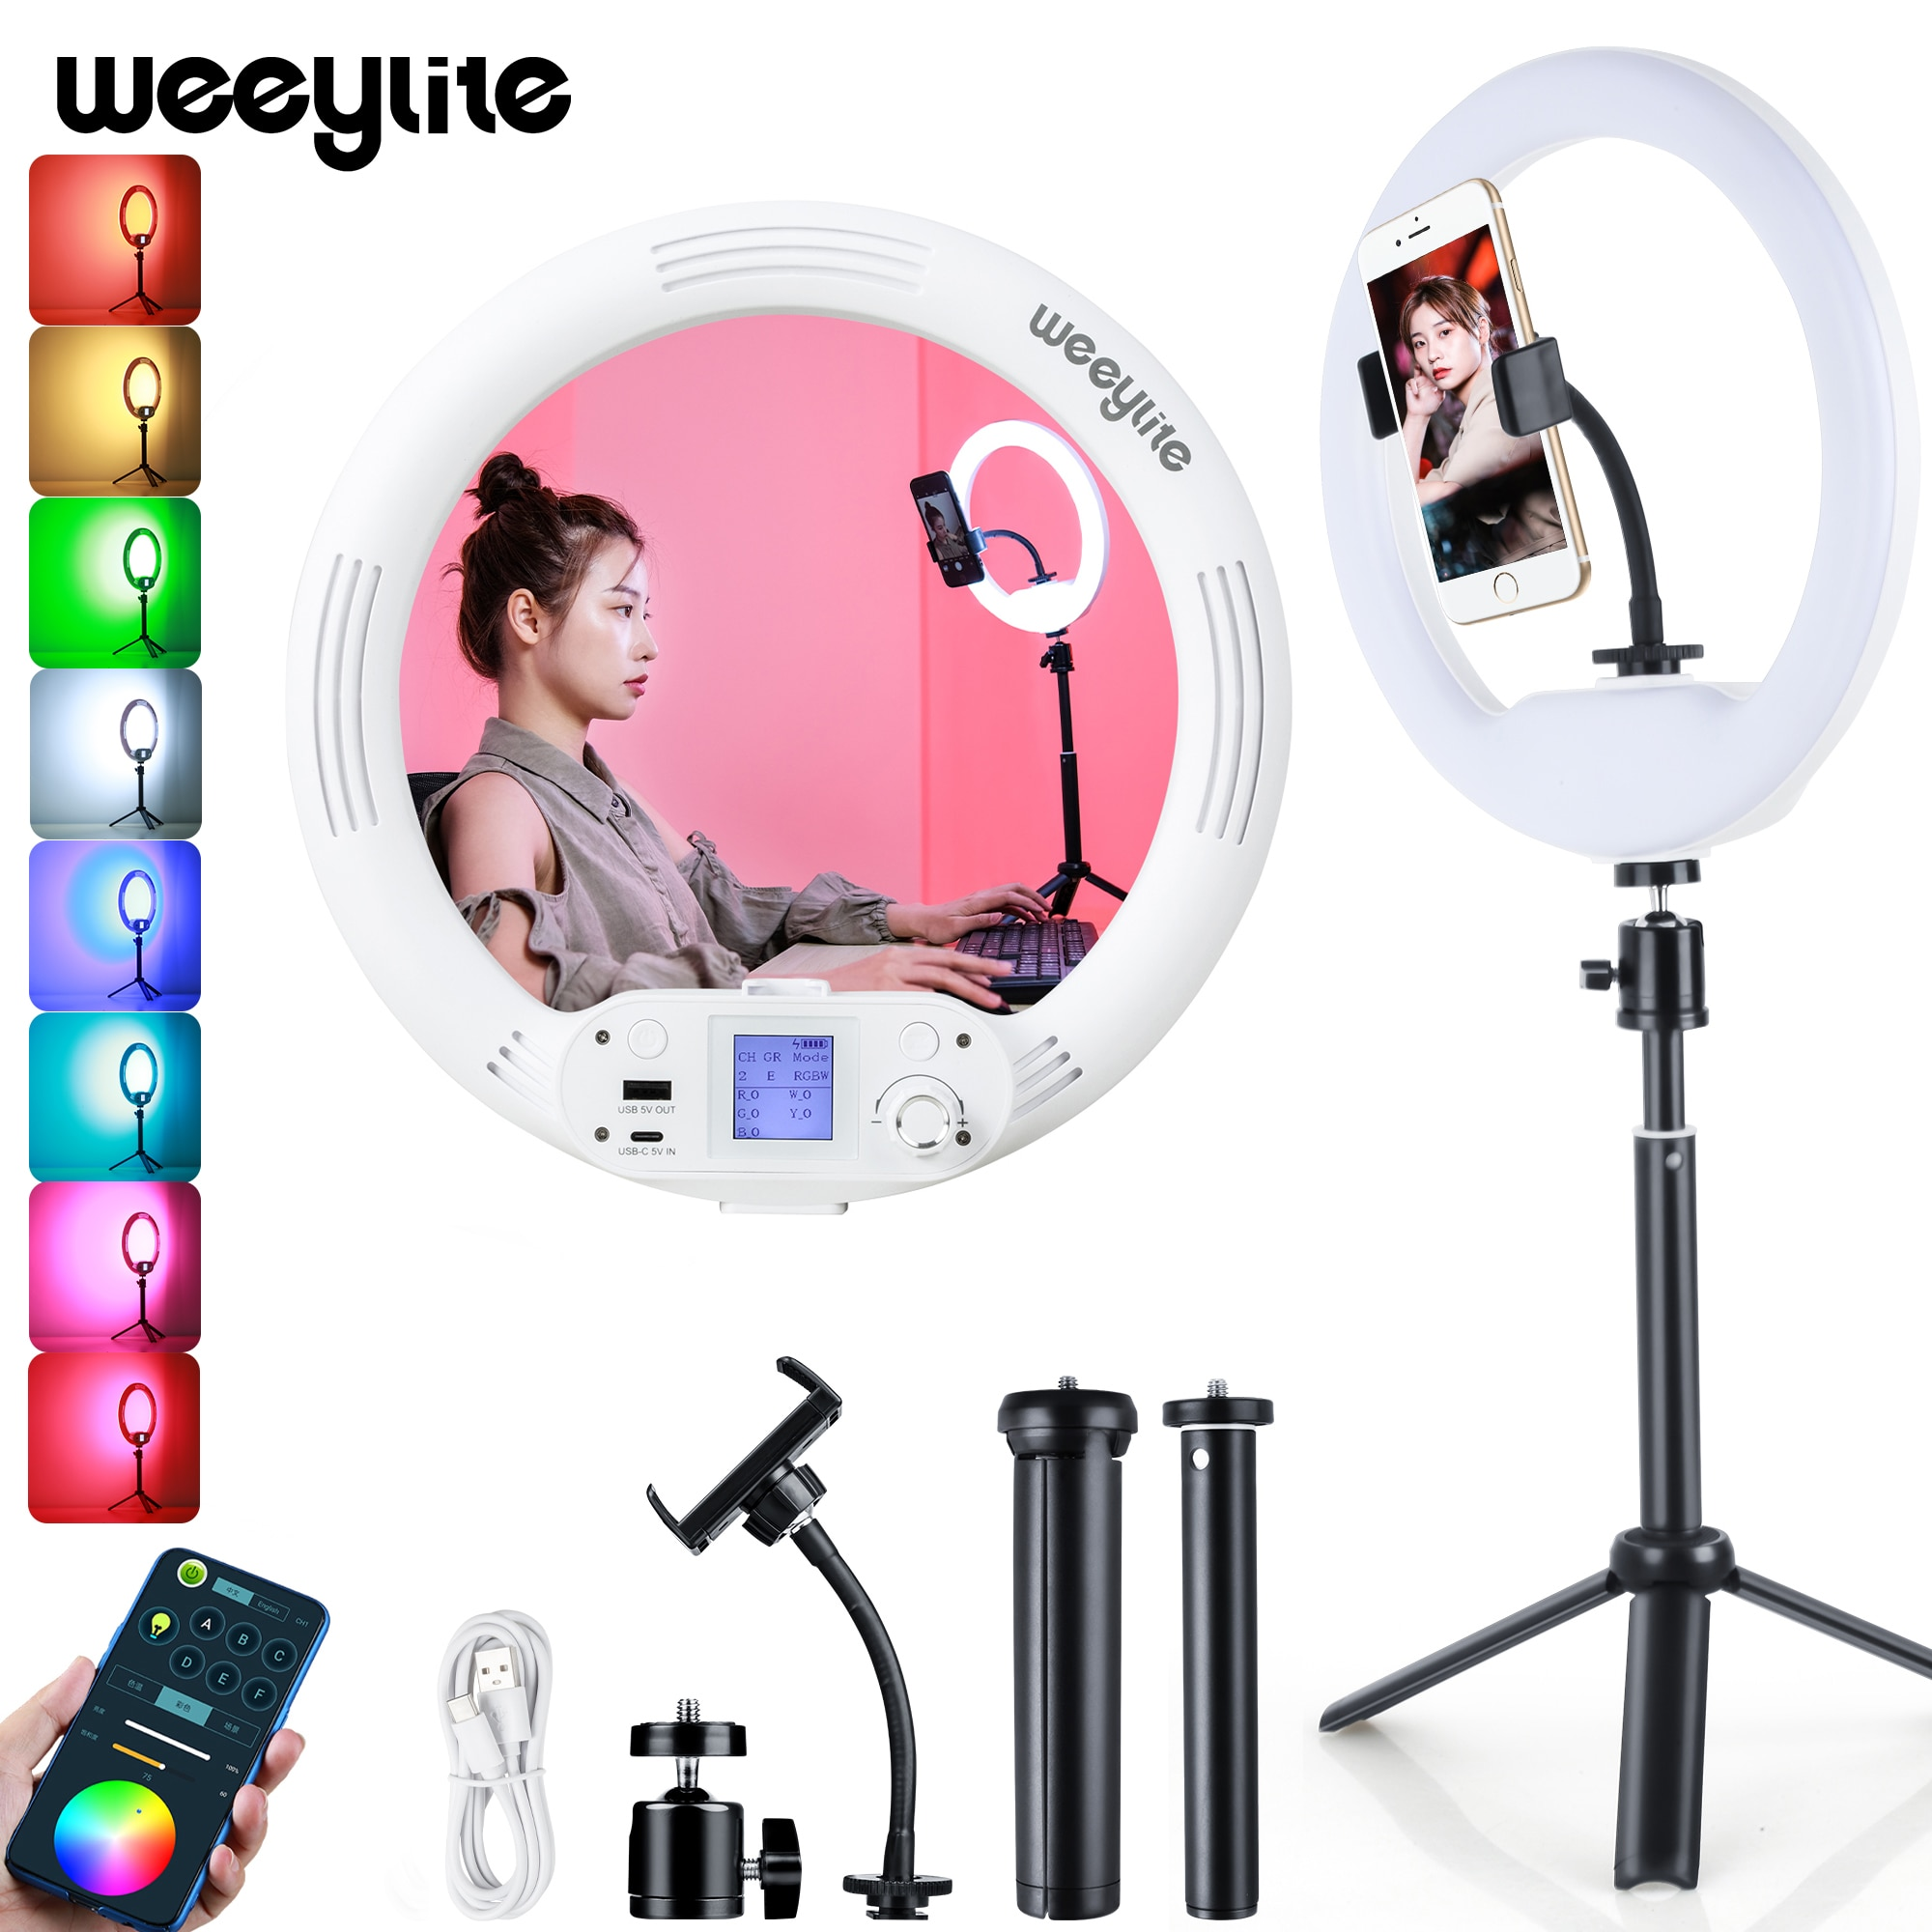 Weeylite WE-9 8 inch RGB Selfie Ring LED Light with Stand Tripod phone bracket Ring Lamp for Youtube Streaming Video Photography